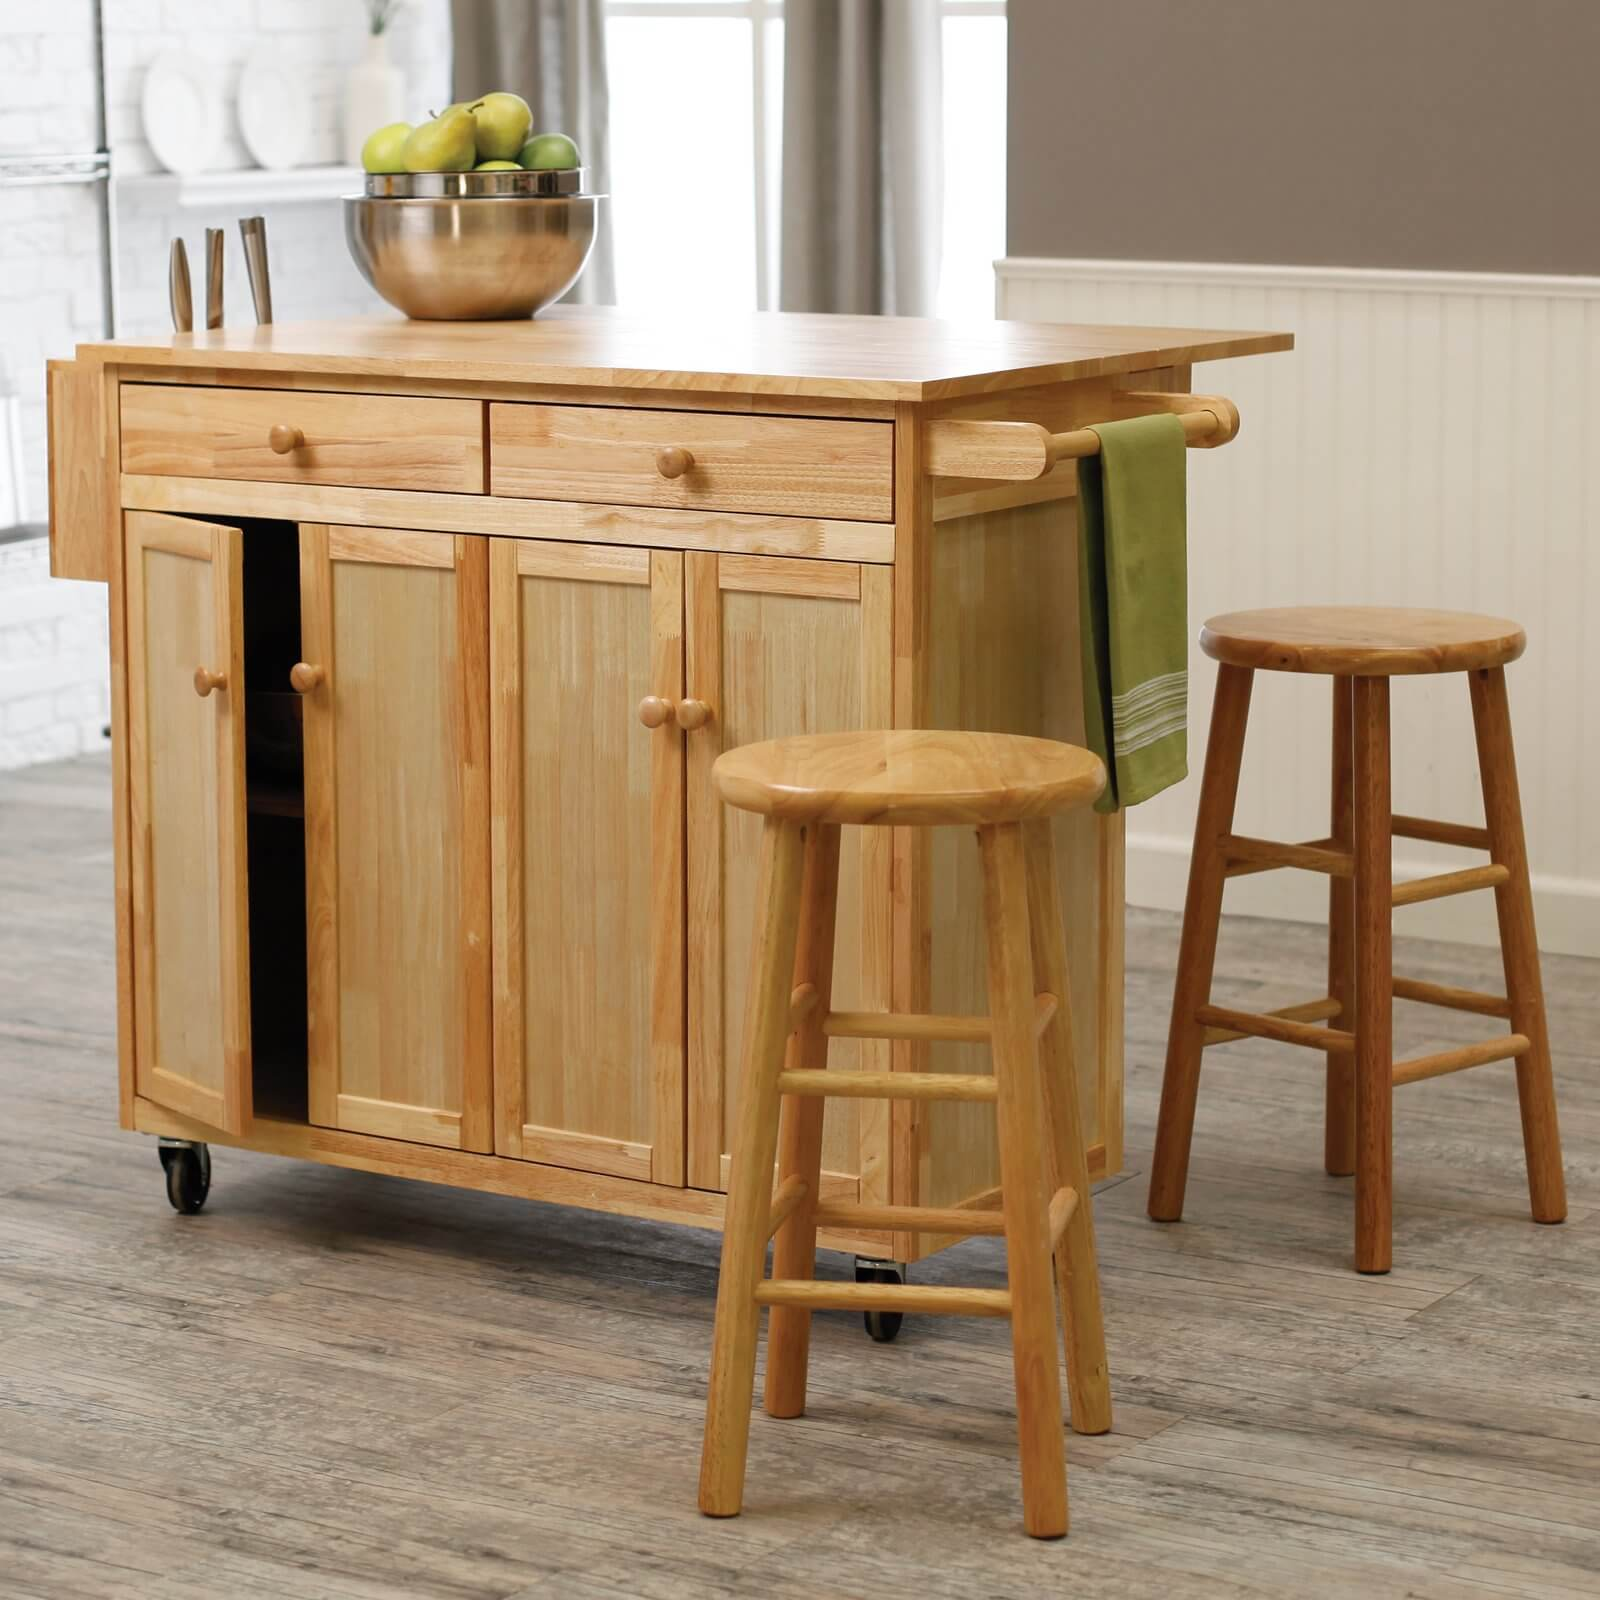 Portable Kitchen Islands With Seating: 10 Types Of Small Kitchen Islands On Wheels